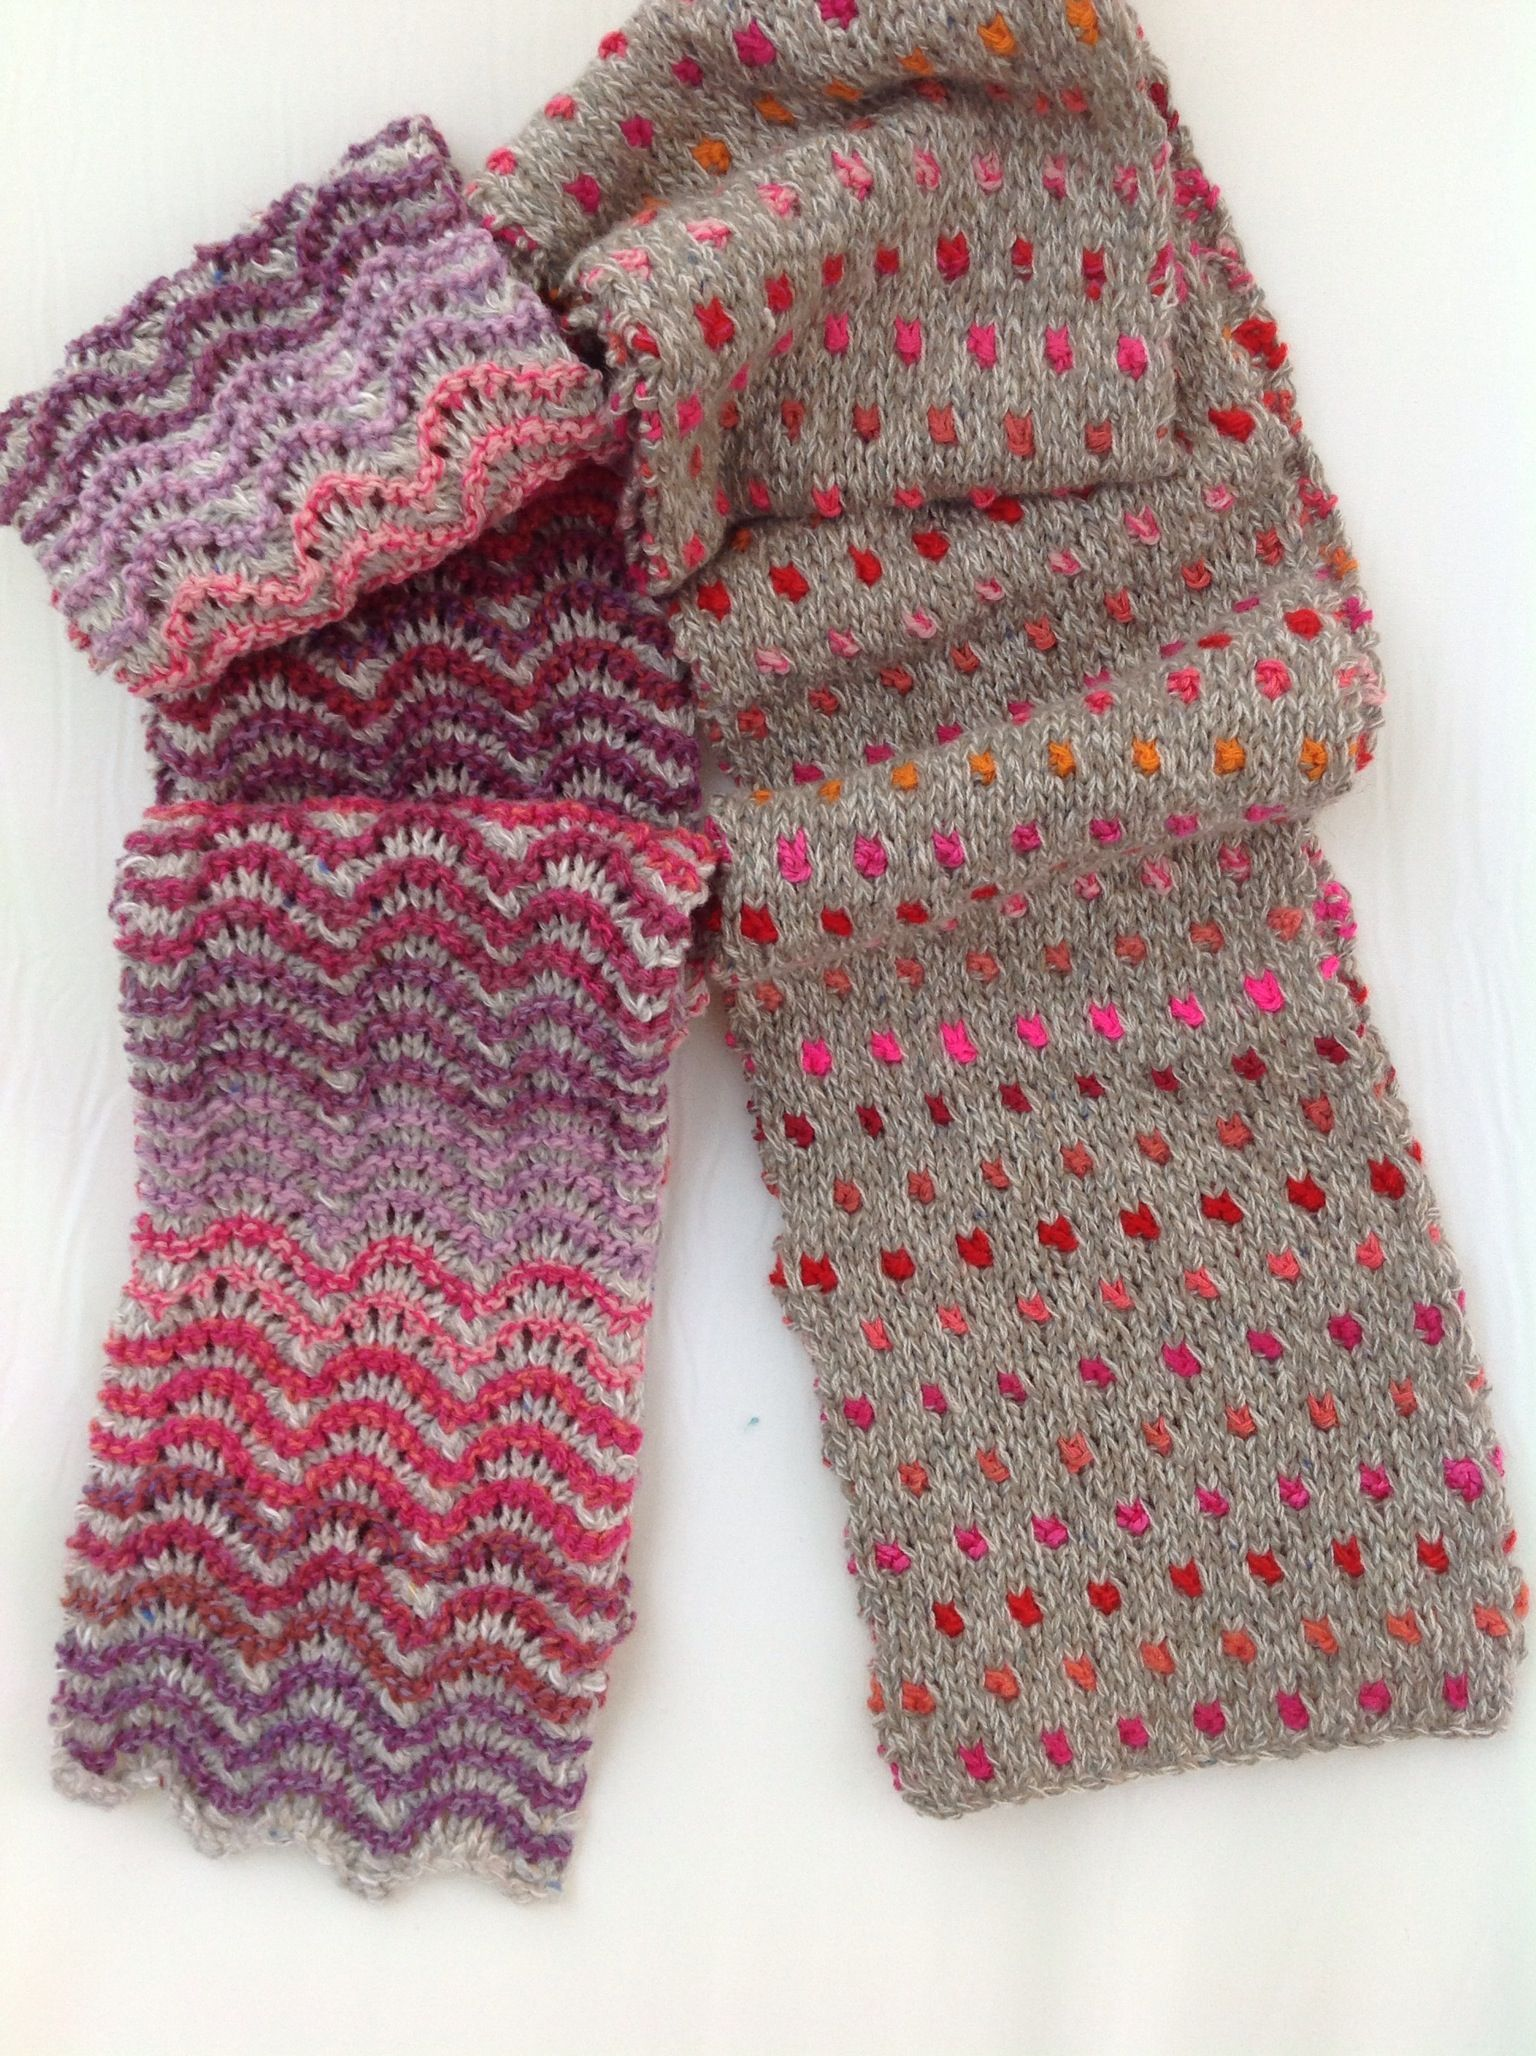 Crochet New Stitches Pinterest : Trying out new patterns! Scarves, knit and crochet Pinterest